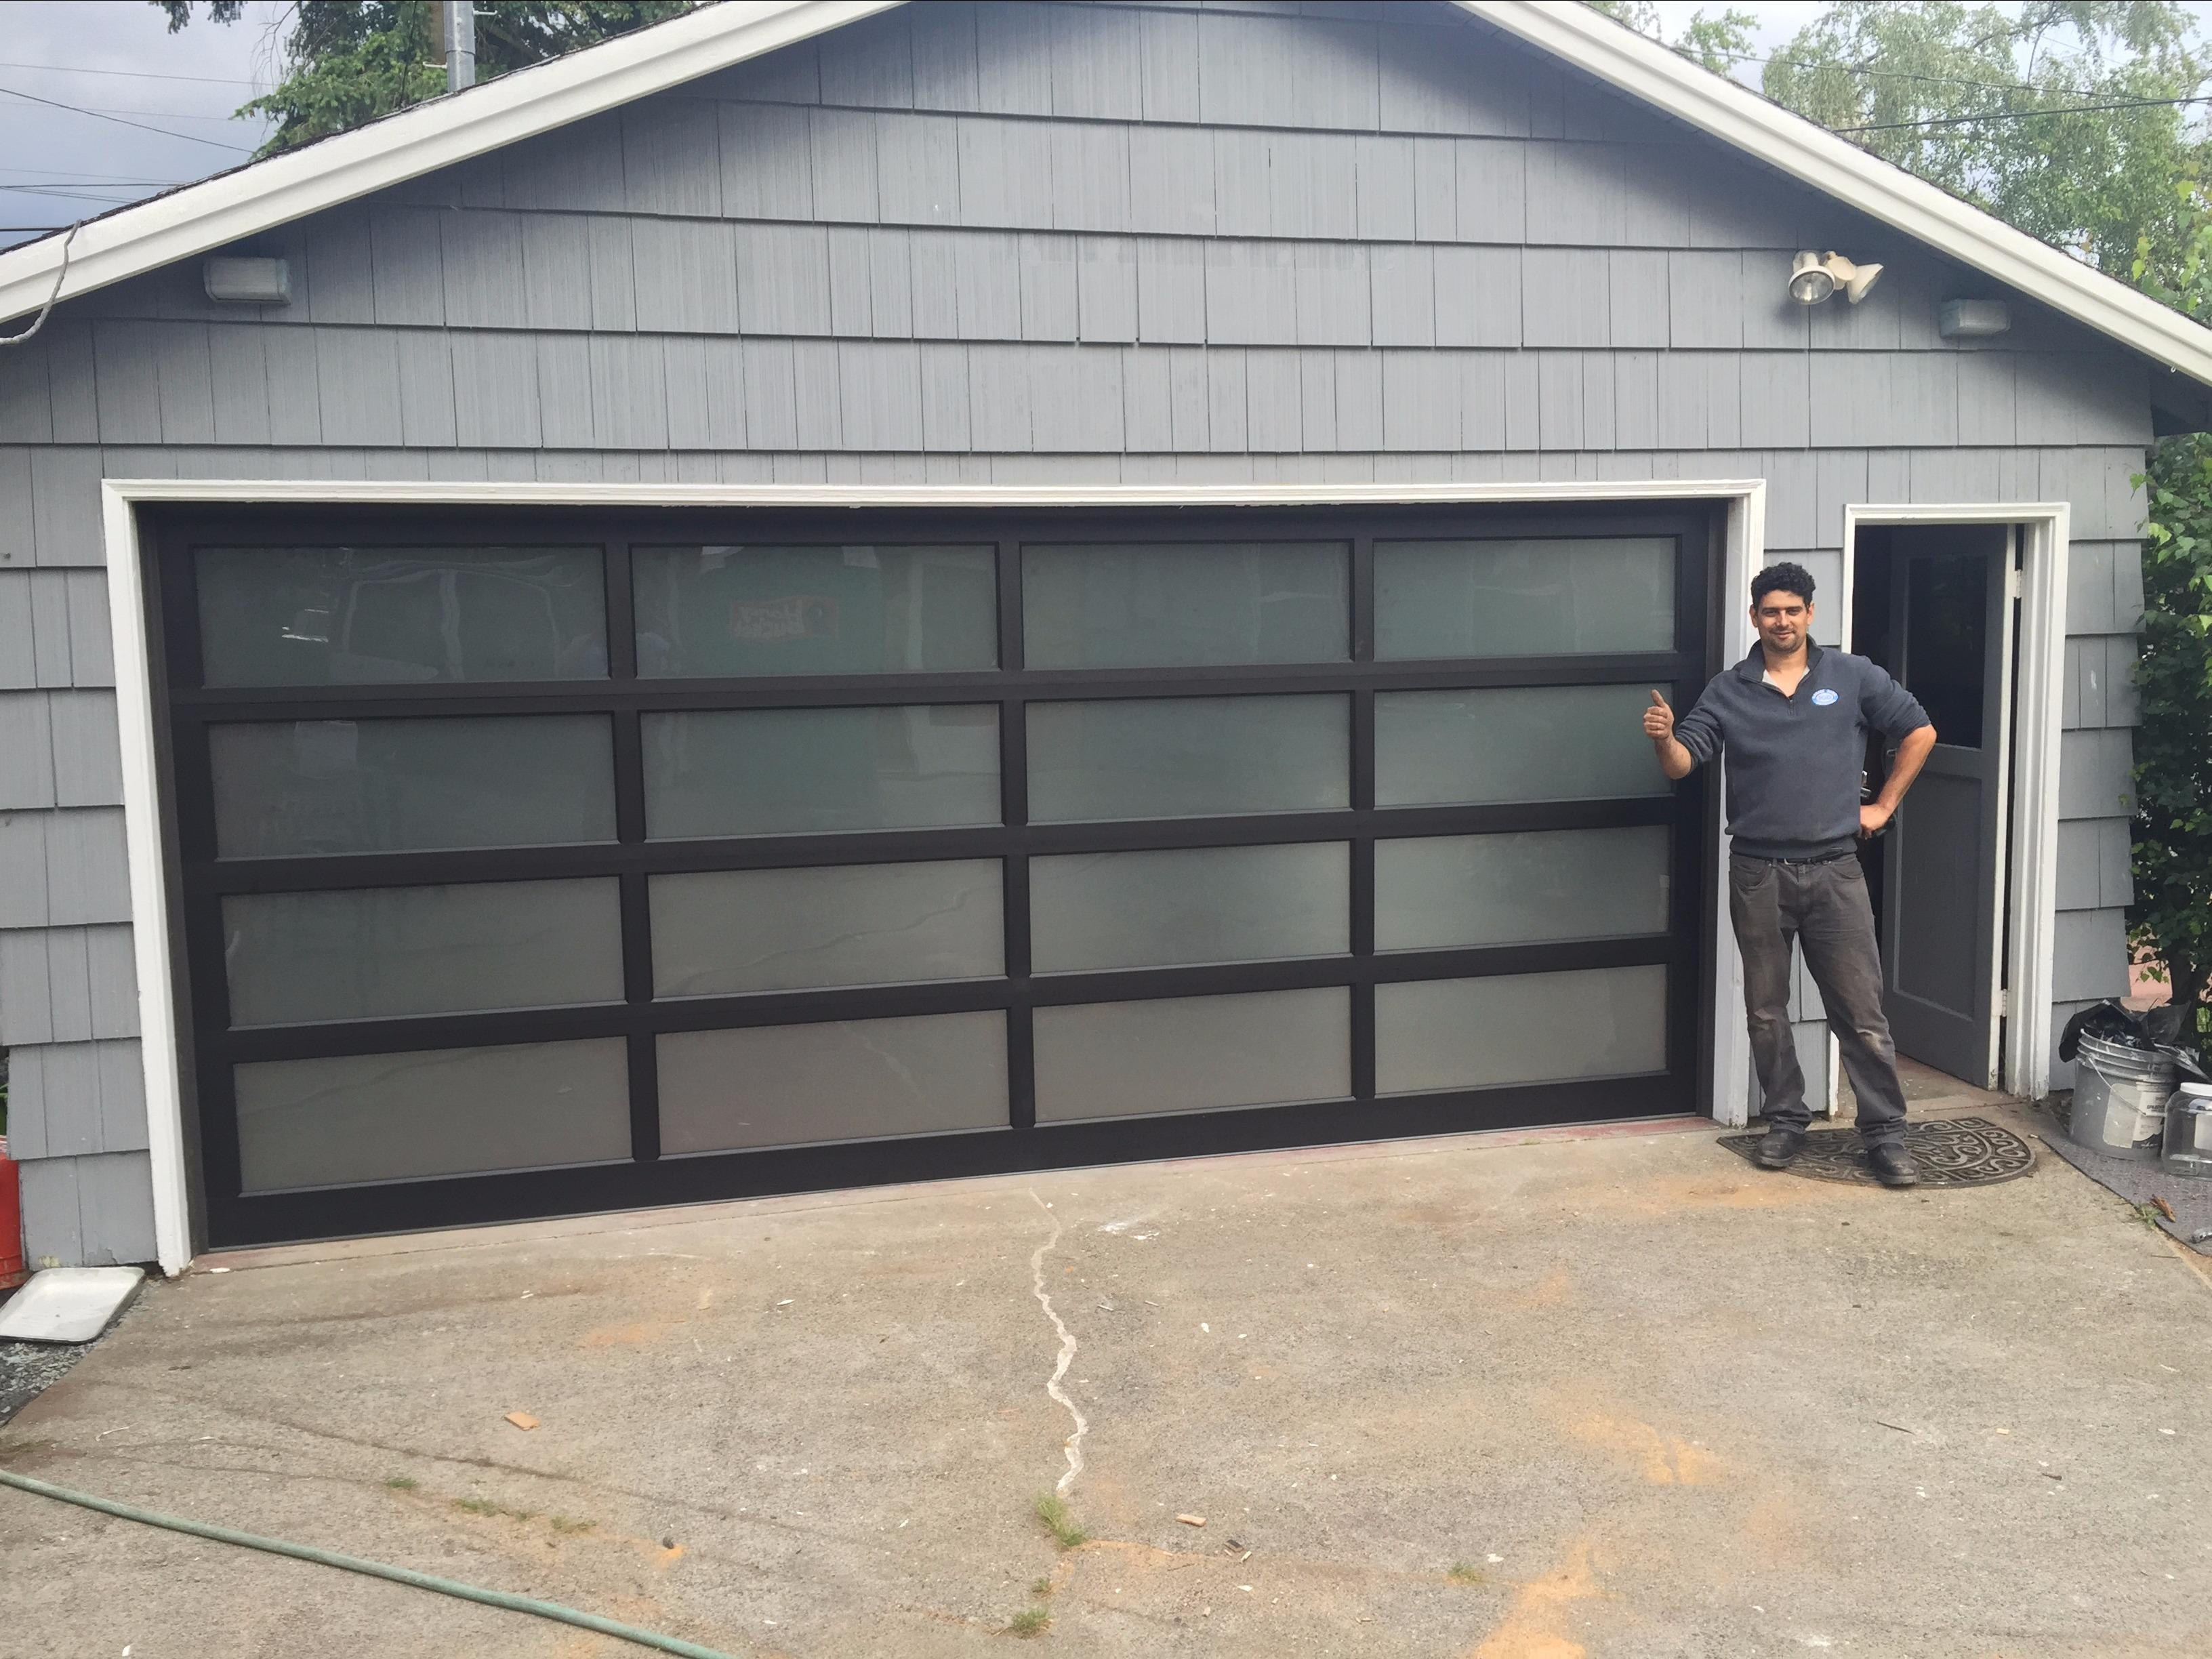 garage full wagarage design size wa commercial sammamish fantastic ideas in repair door garager renton doors of gallery doorir